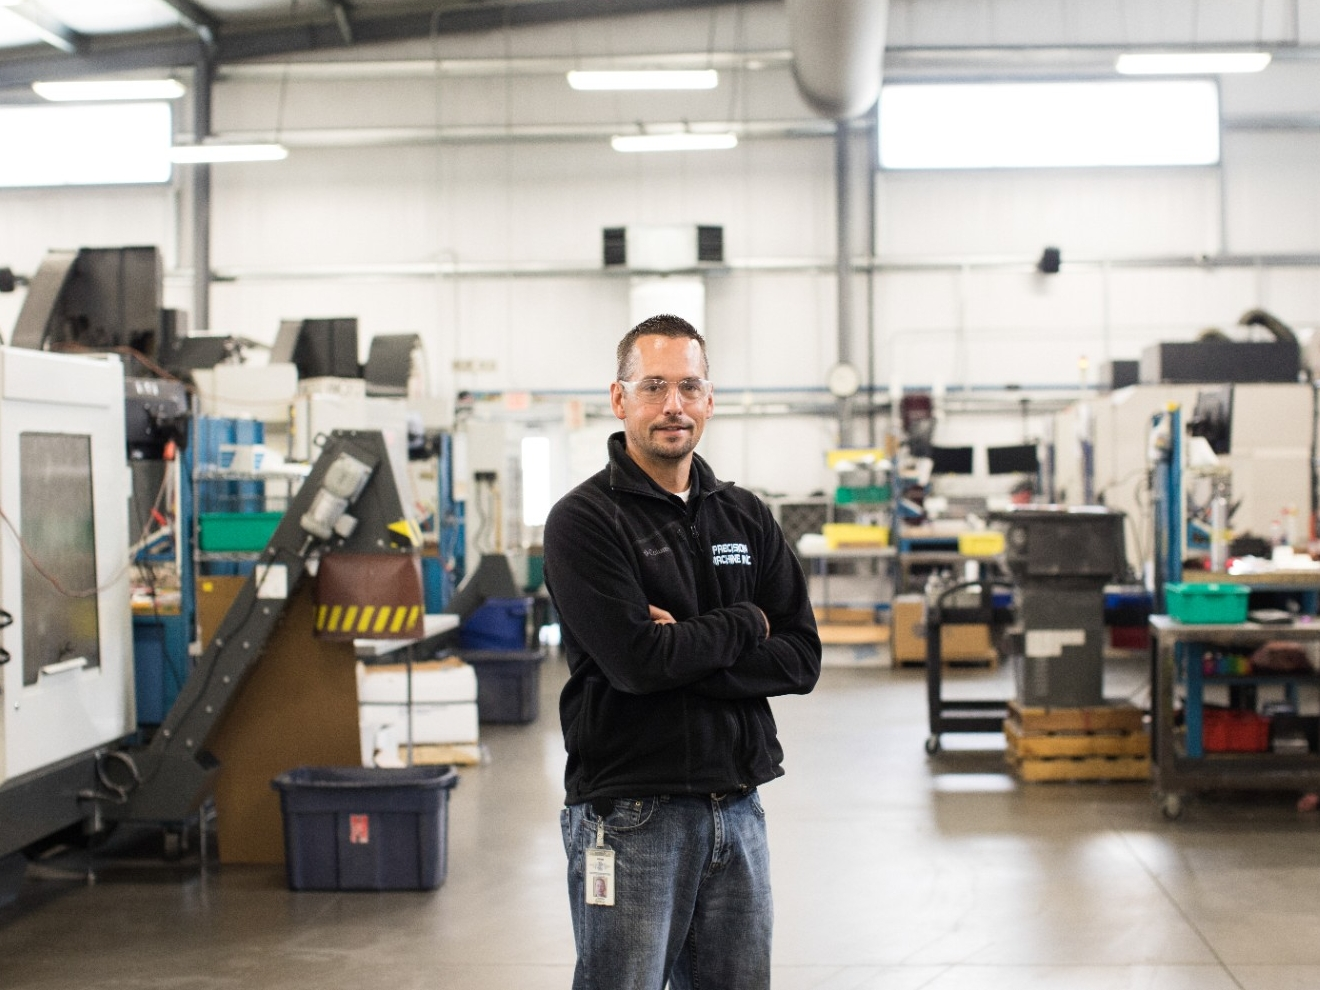 A small business owner stands in the company's work shop.